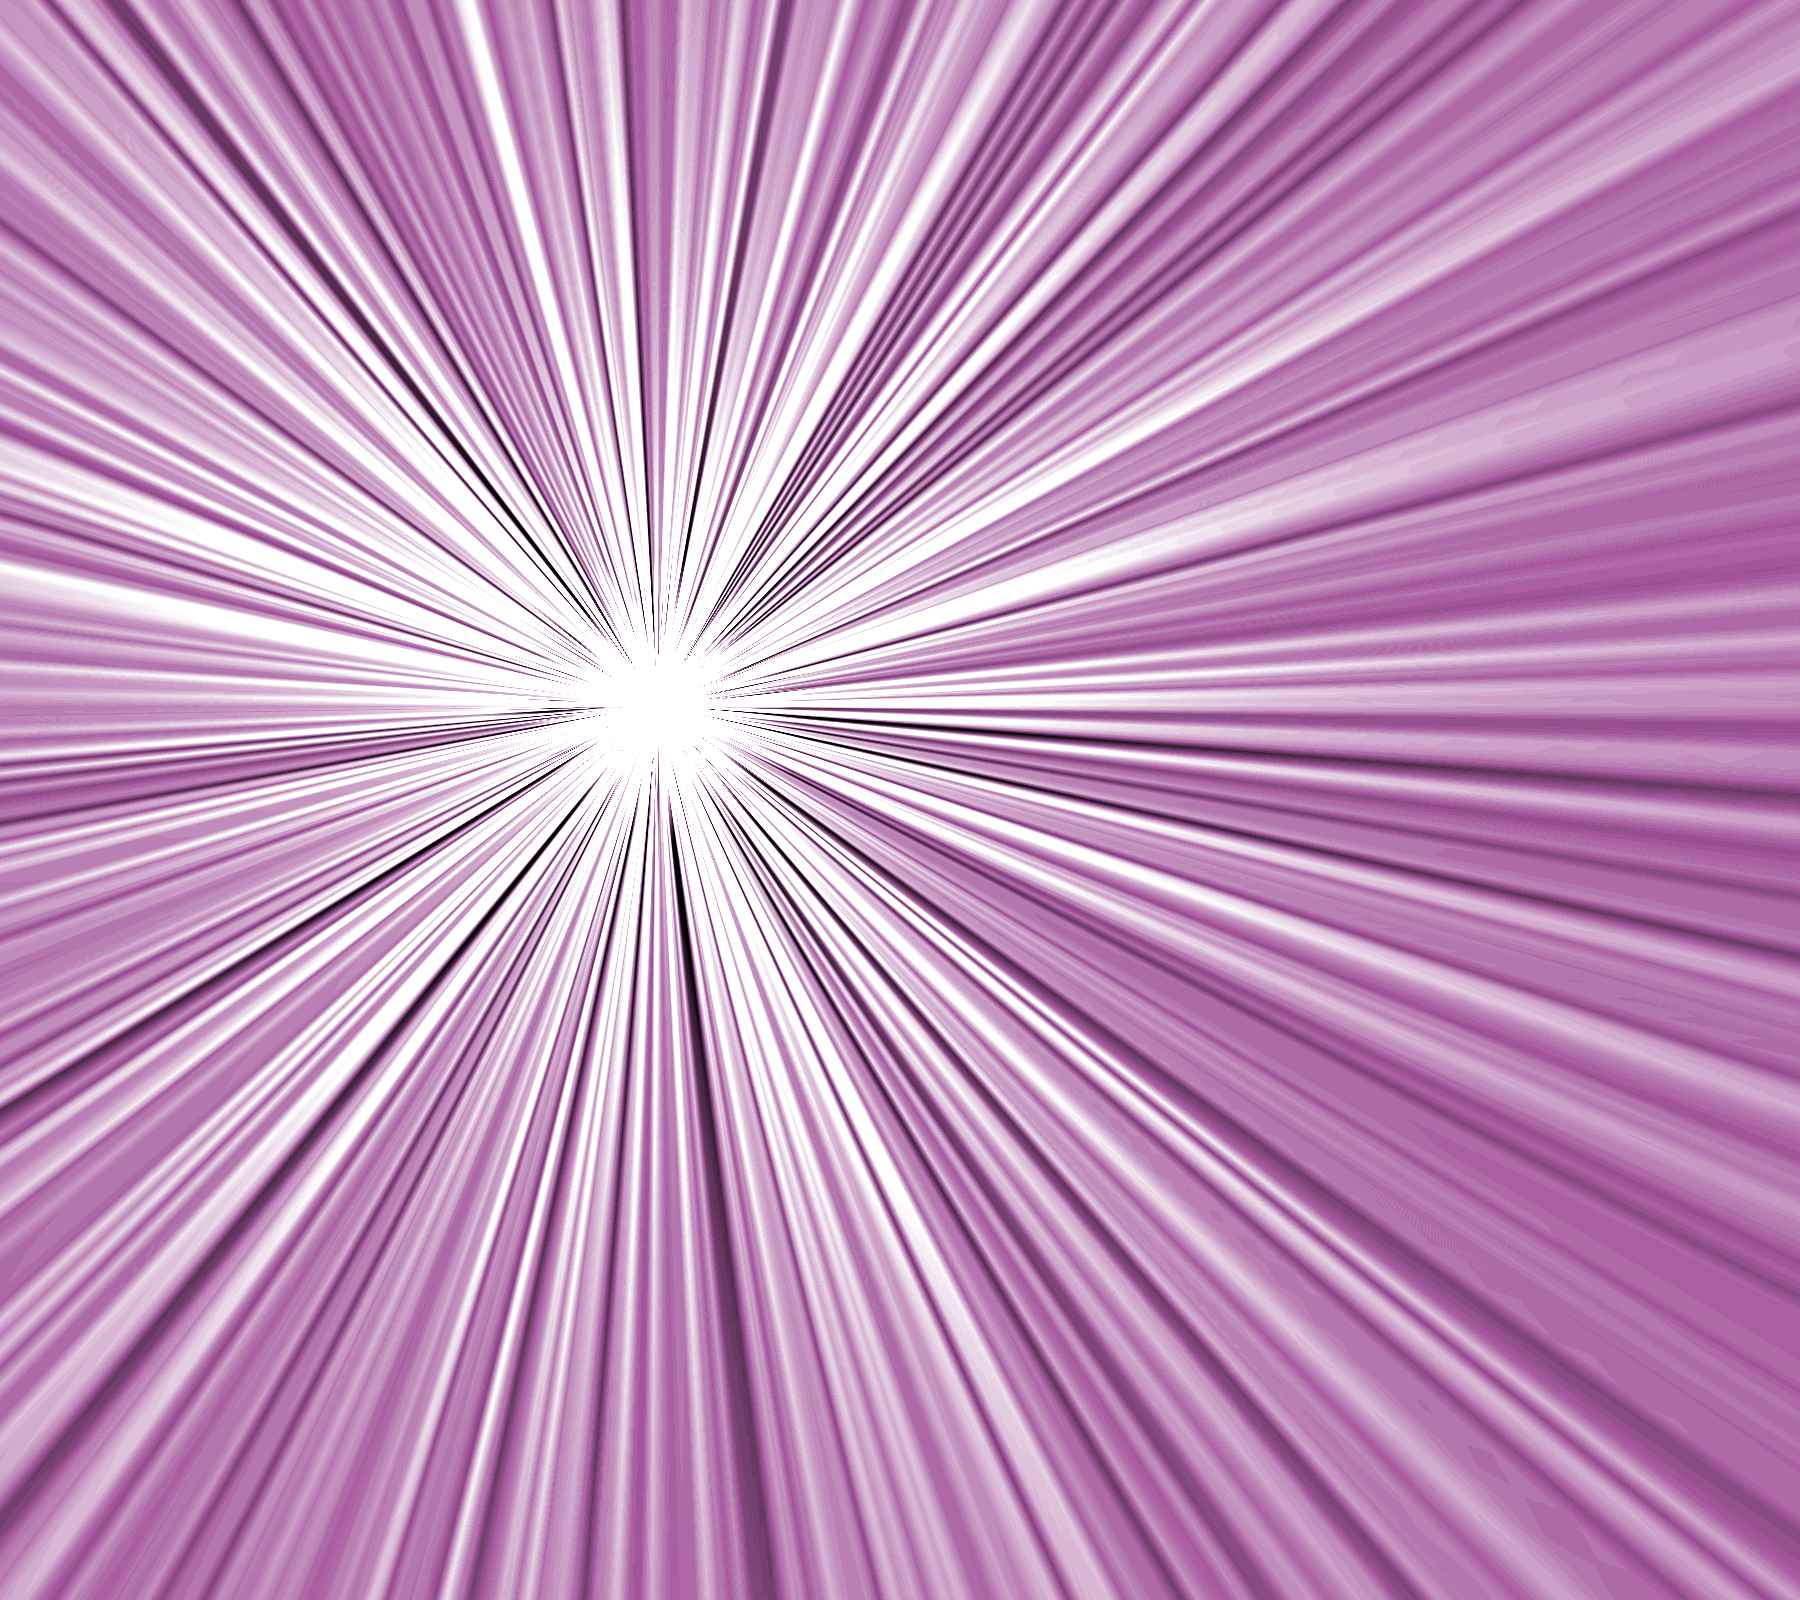 Plum Colored Starburst Radiating Lines Background